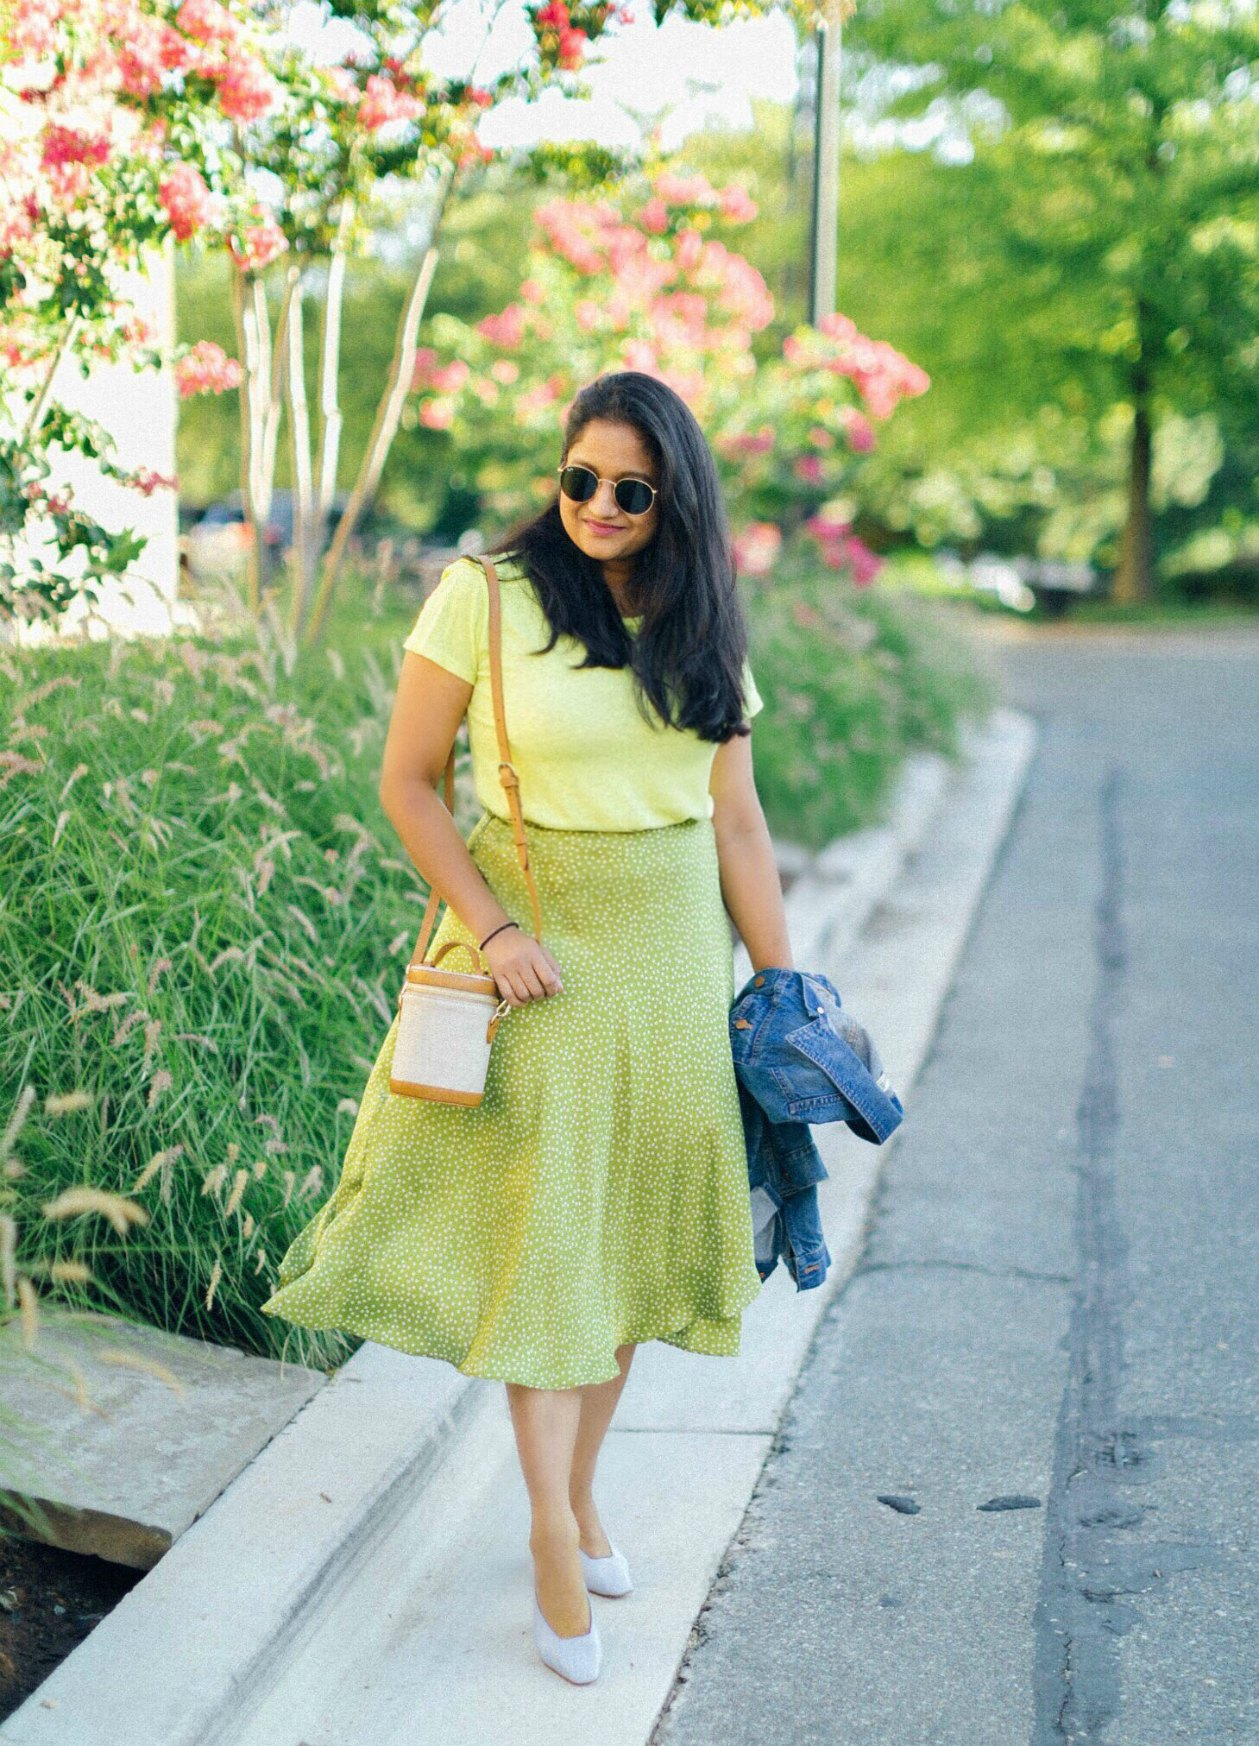 wearing Mango Polka dots satin midi skirt , B.P. Tee, Paravel Capsule bag, light blue heels | Best Labor Day Sales-Women's Clothing & Fashion by popular fashion blog, Dreaming Loud: image of a woman standing under a tall flowering bush and wearing  Mango Polka dots satin midi skirt, B.P. Tee, Capsule bag, and light blue heels.